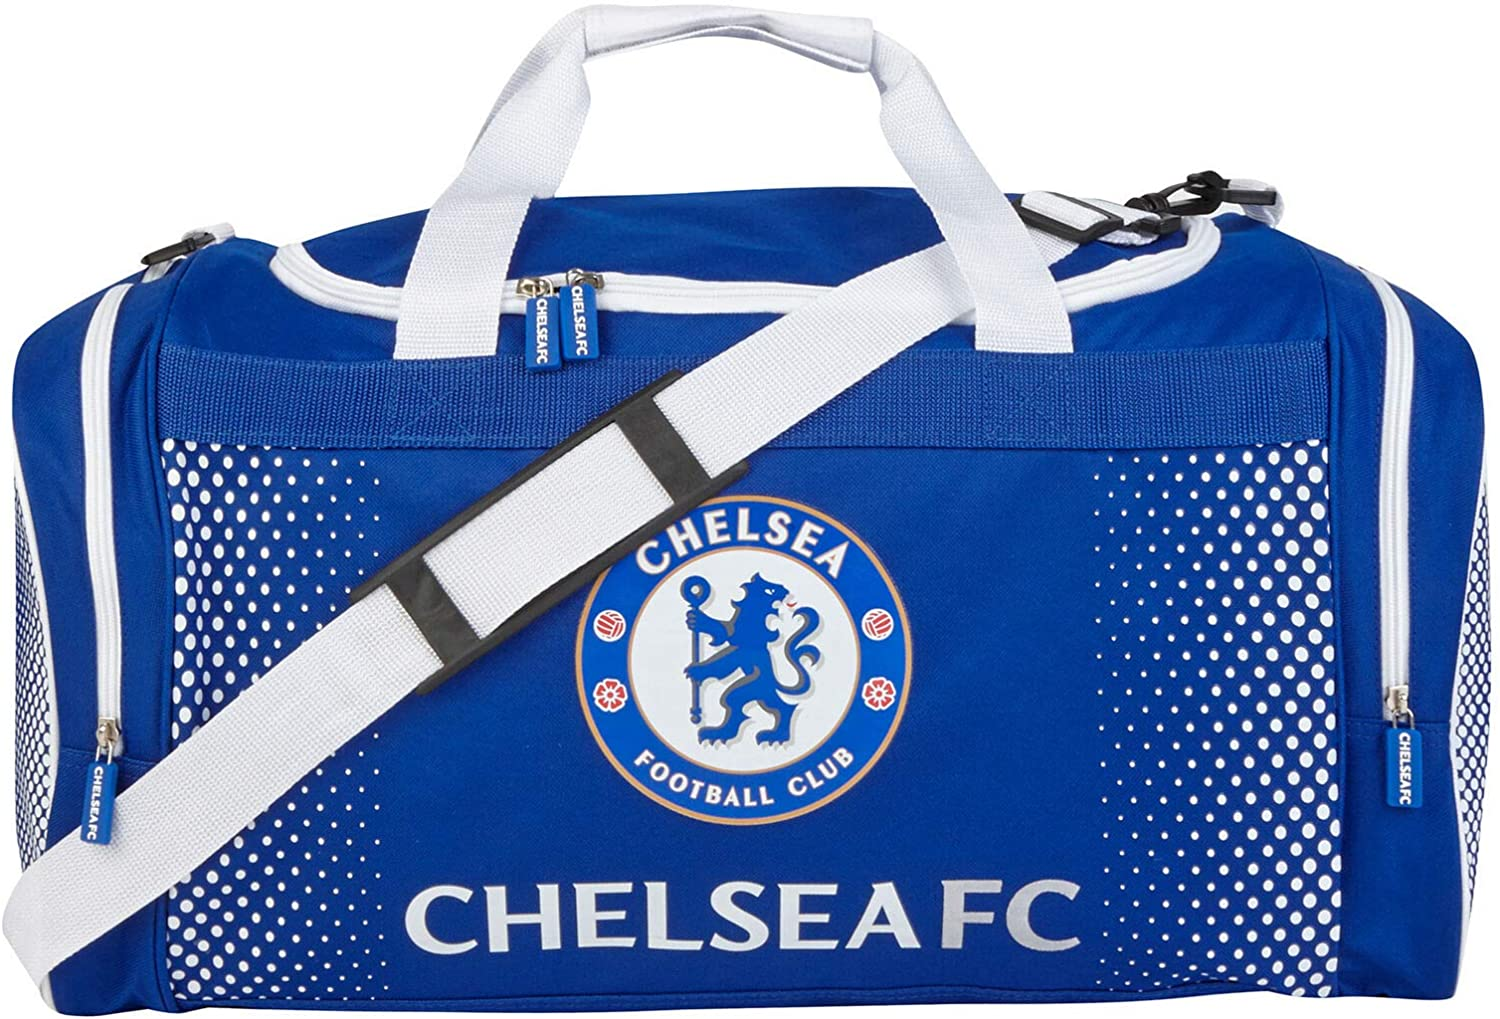 Chelsea Shade Holdall Bag Back To School Gym Bag Football Kids Adults Gift